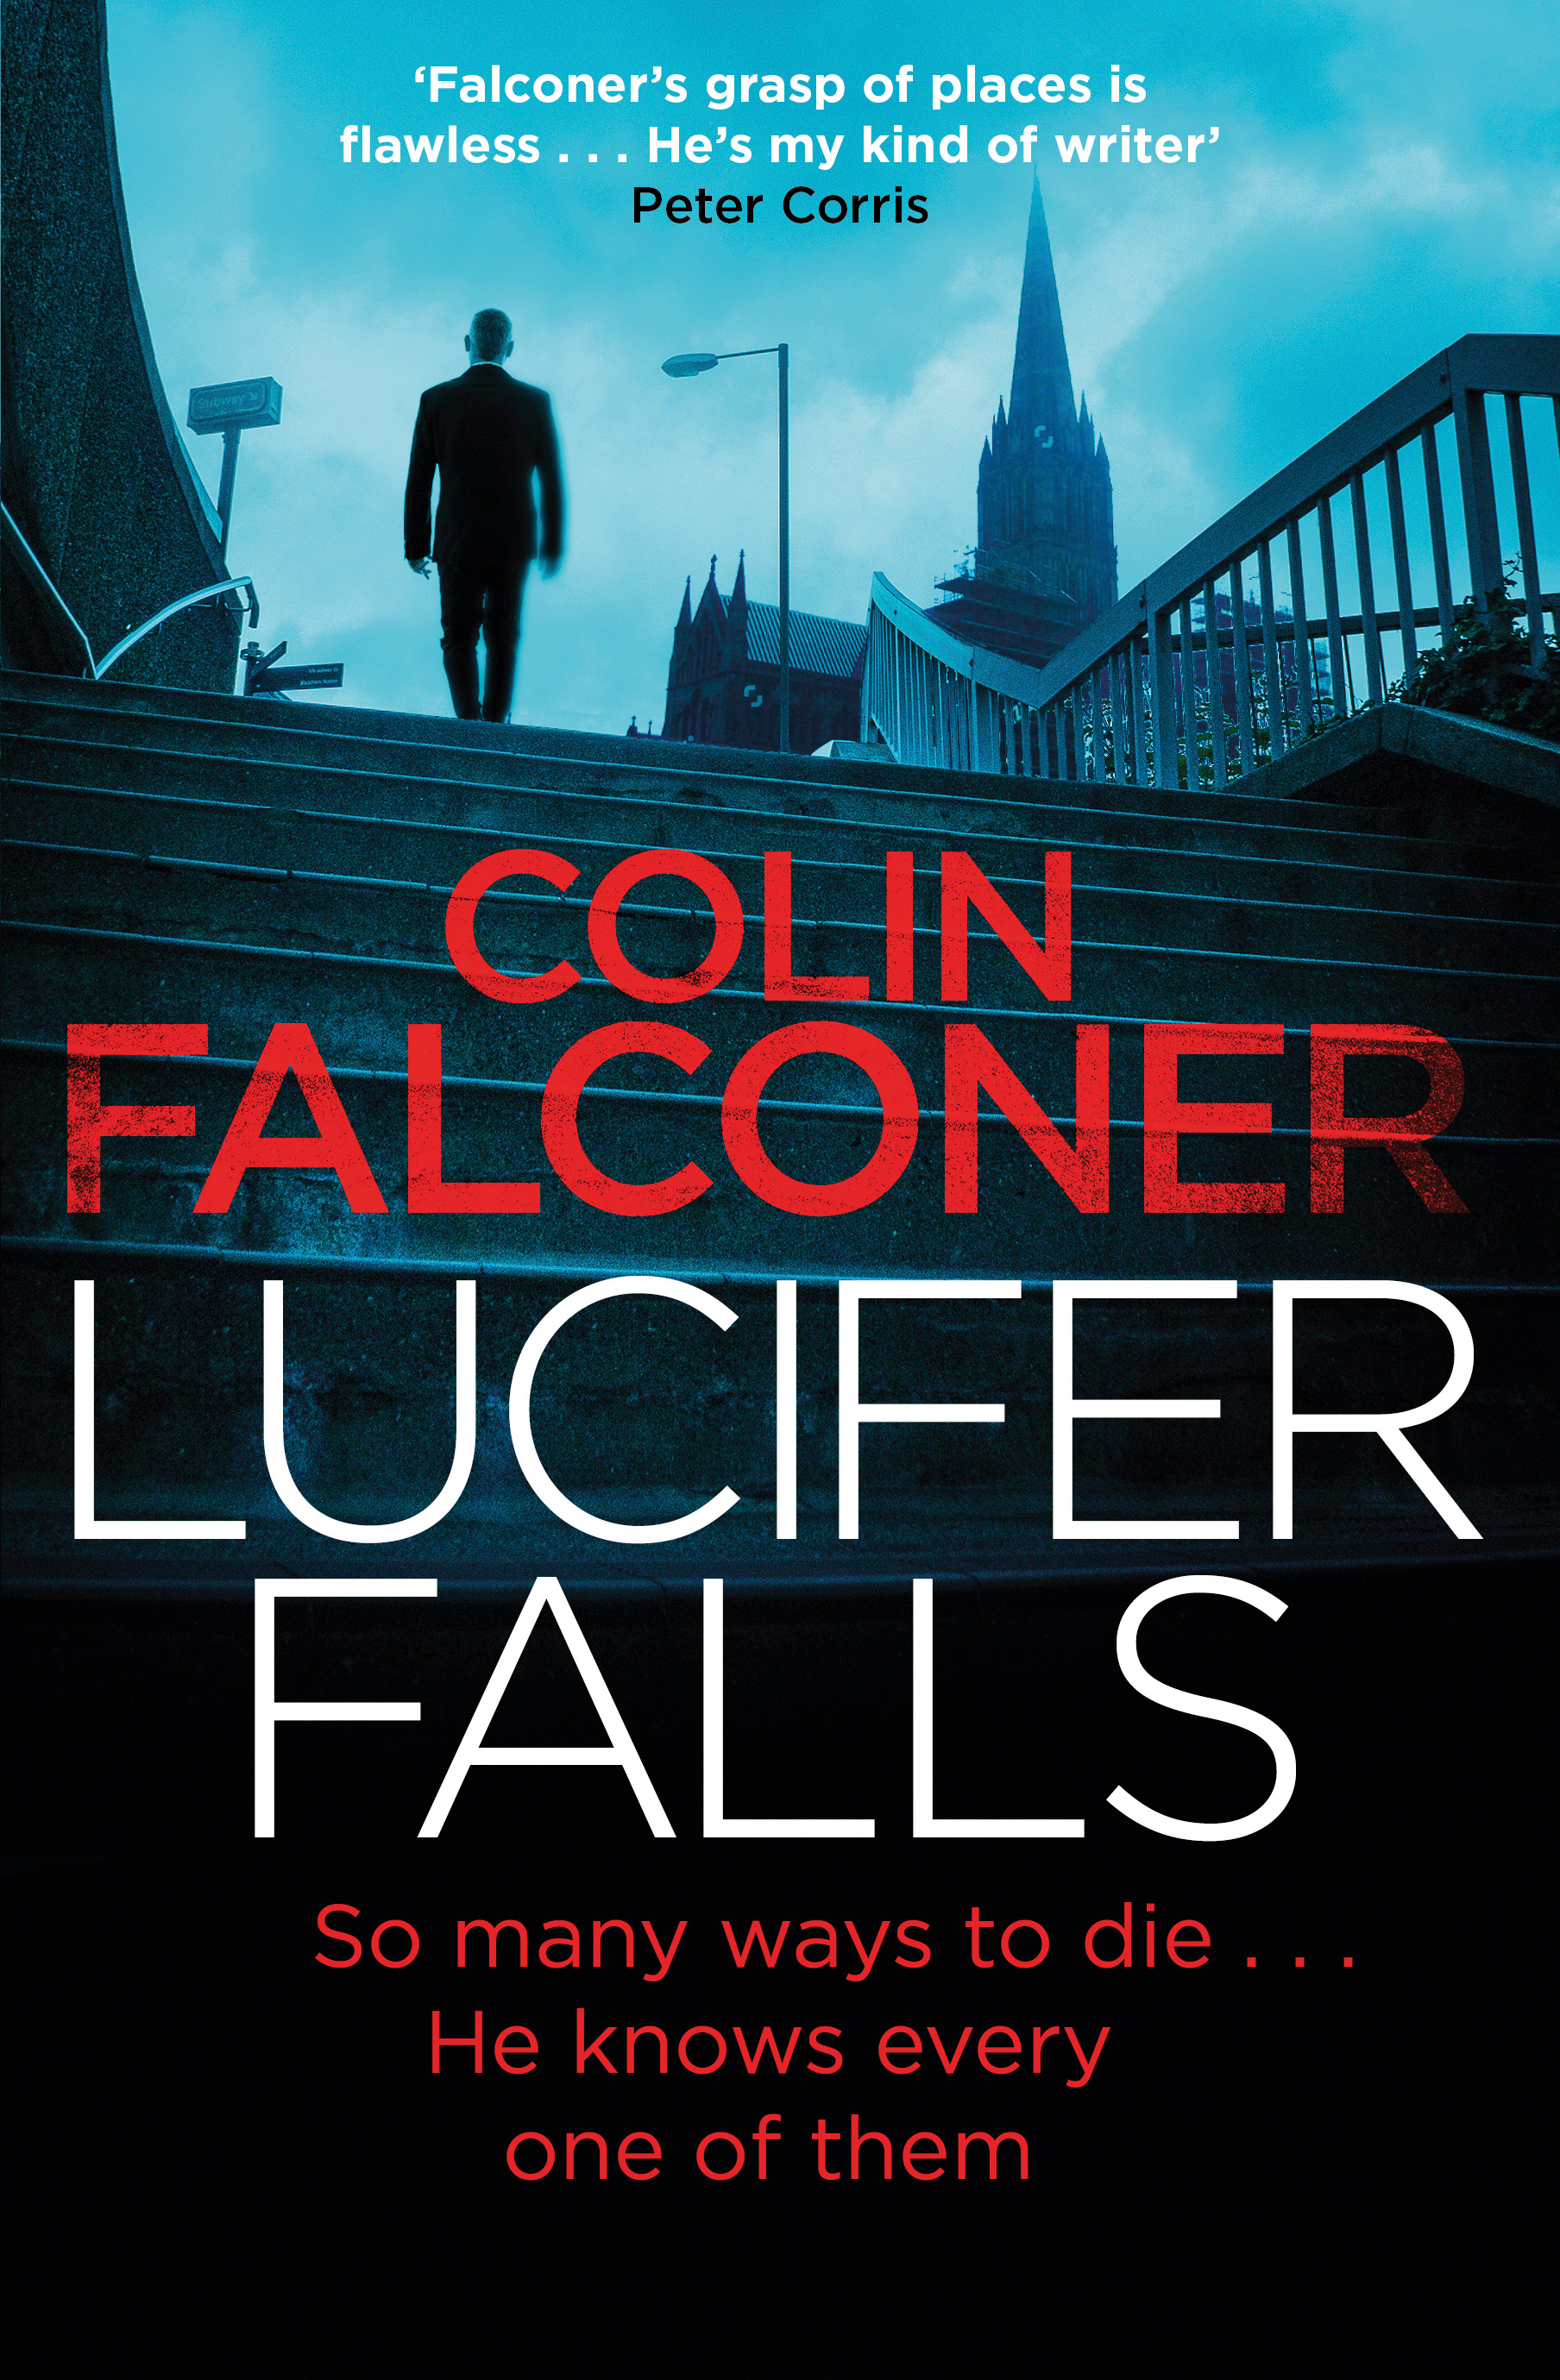 Lucifer Falls by Colin Falconer (Constable, $A29.99)